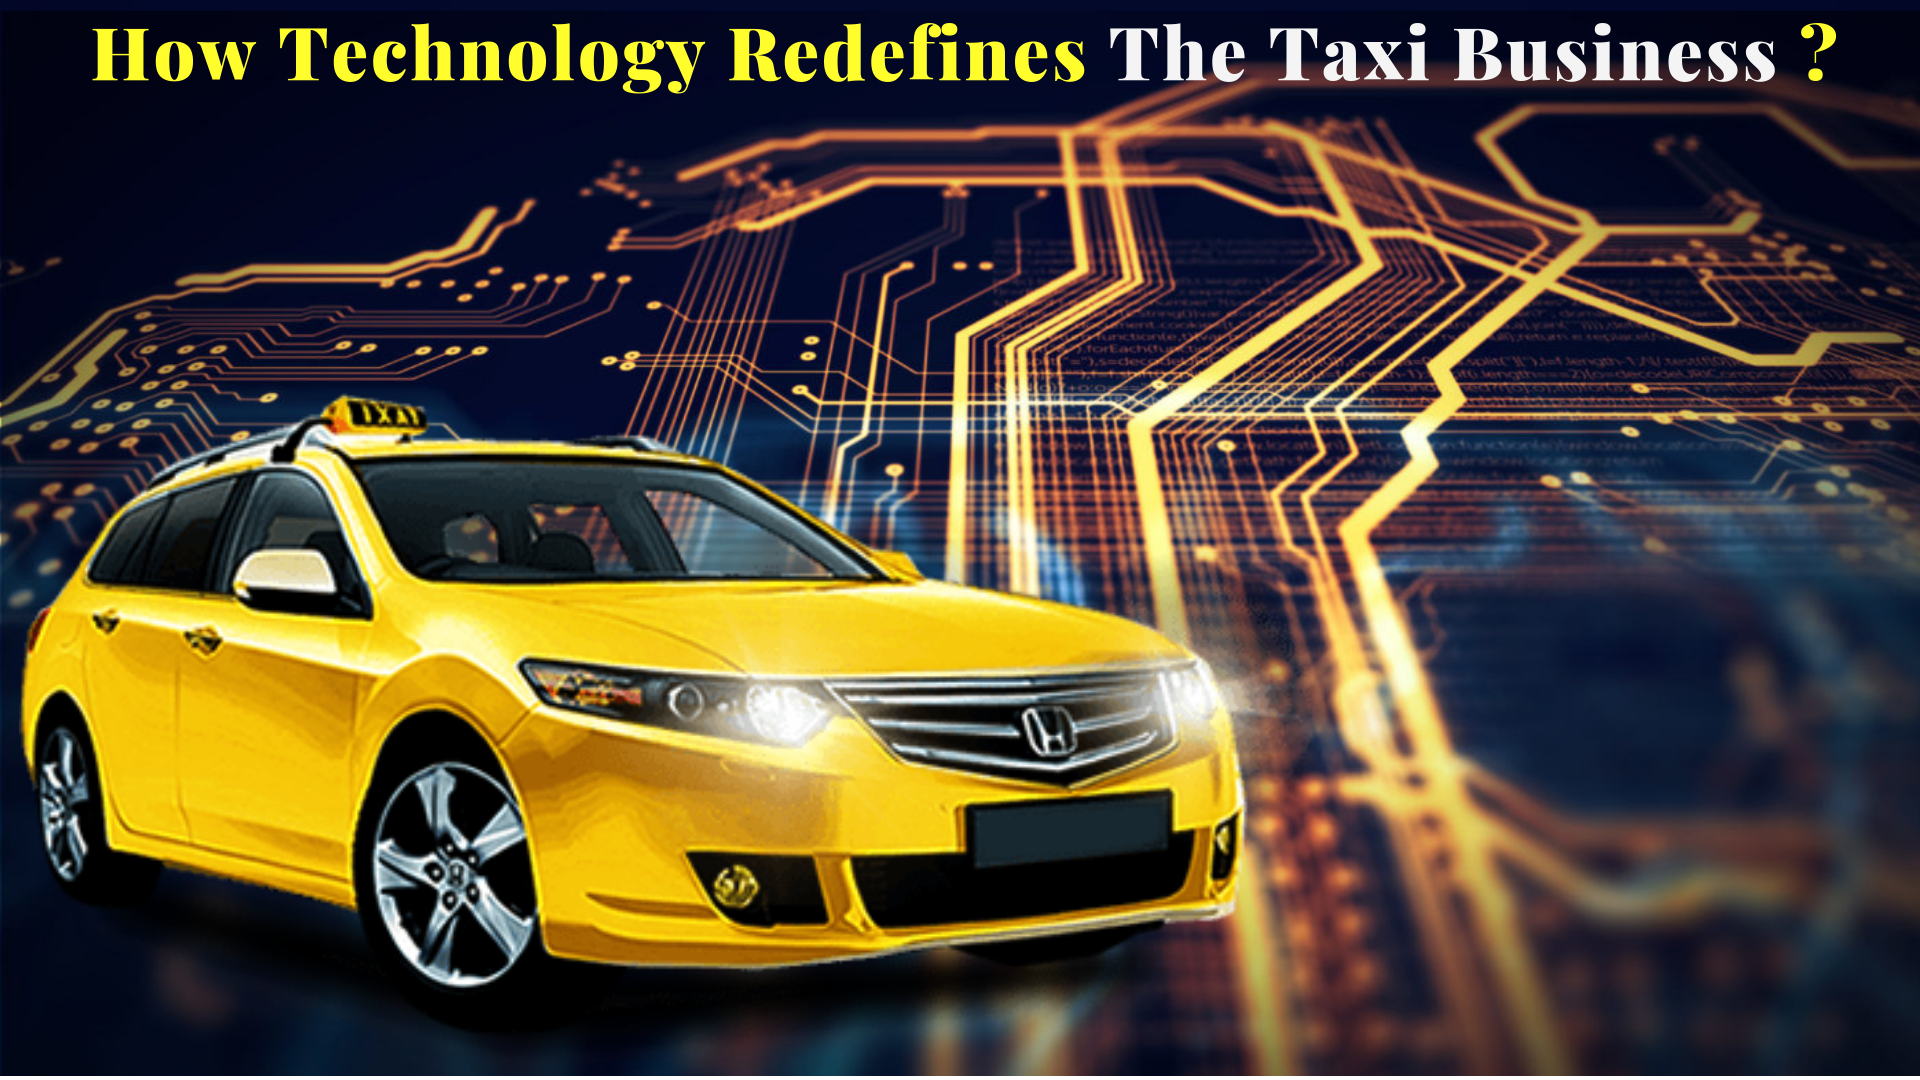 How technology redefines taxi business